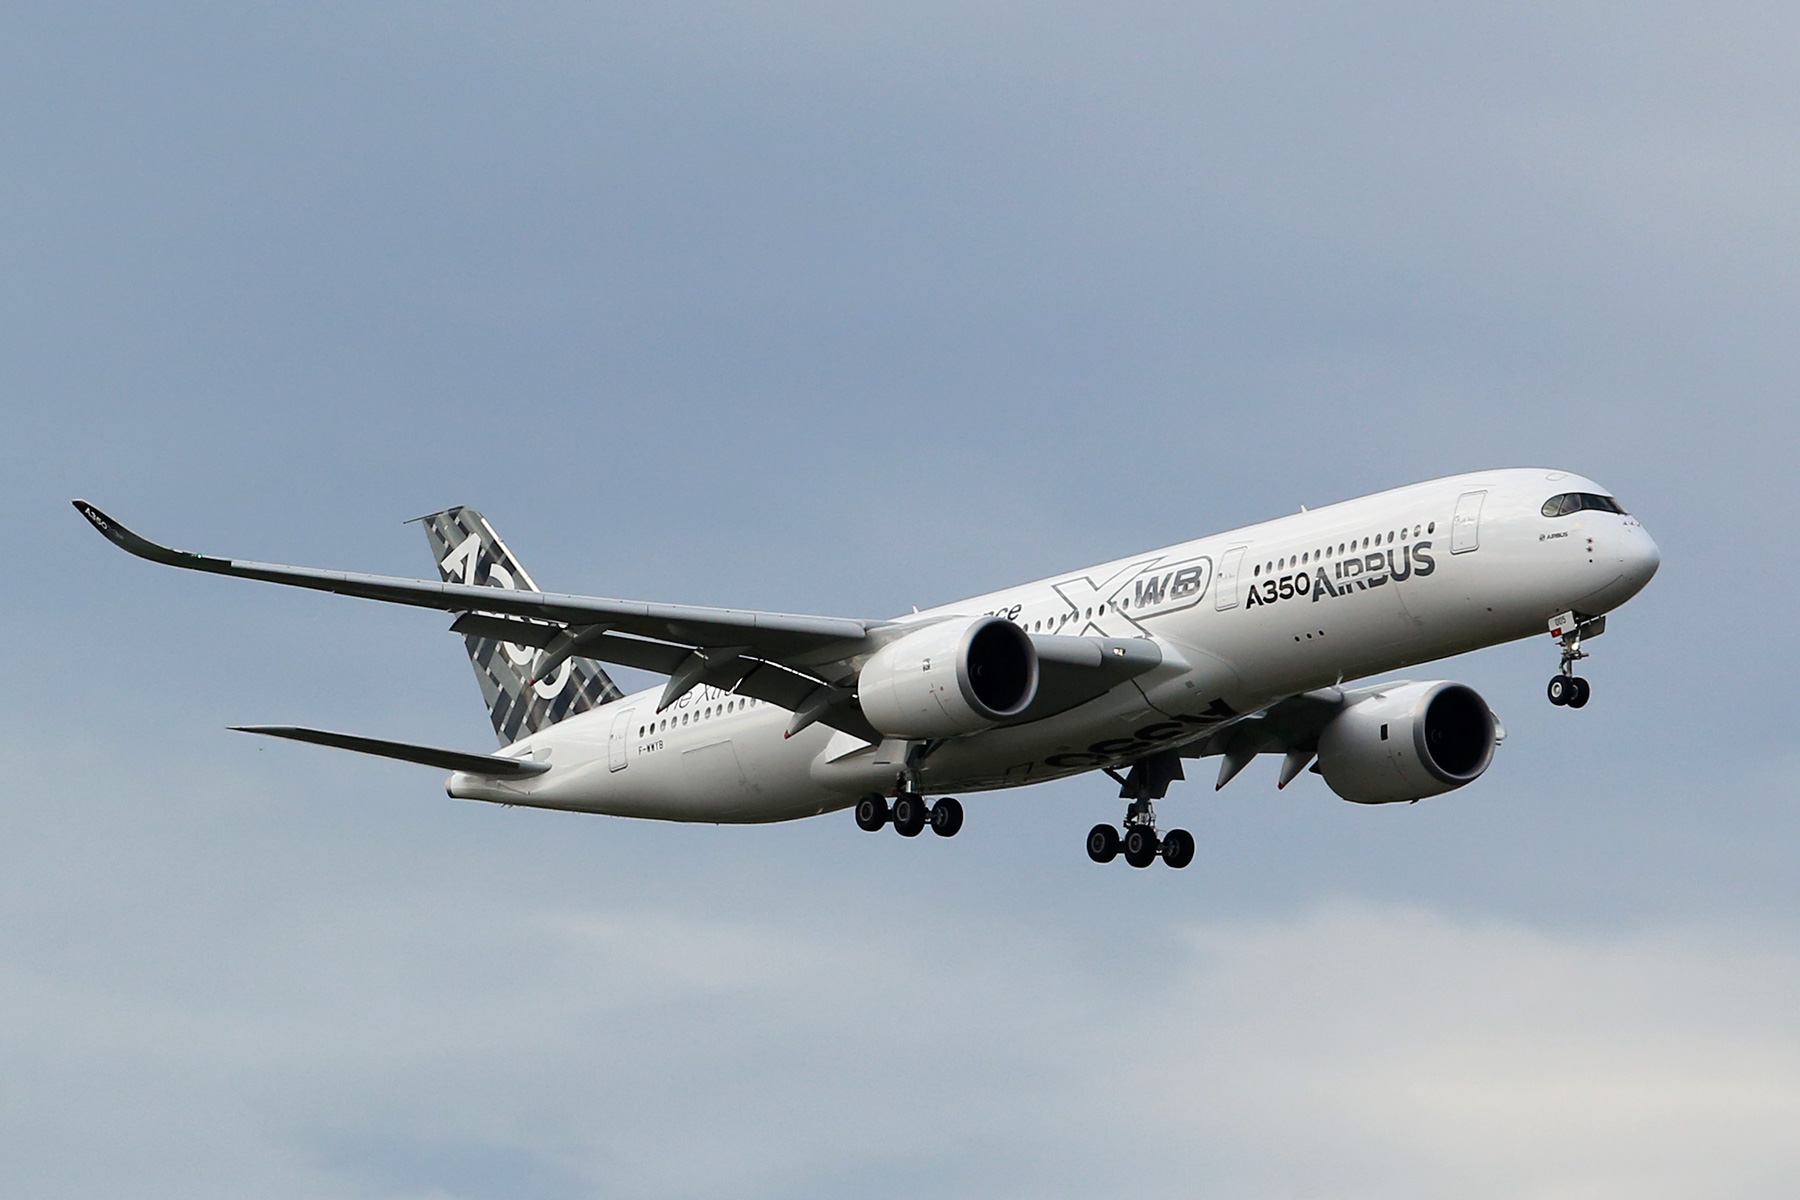 F-WWYB Airbus A350 at Perth Airport – Sunday 10 August 2014